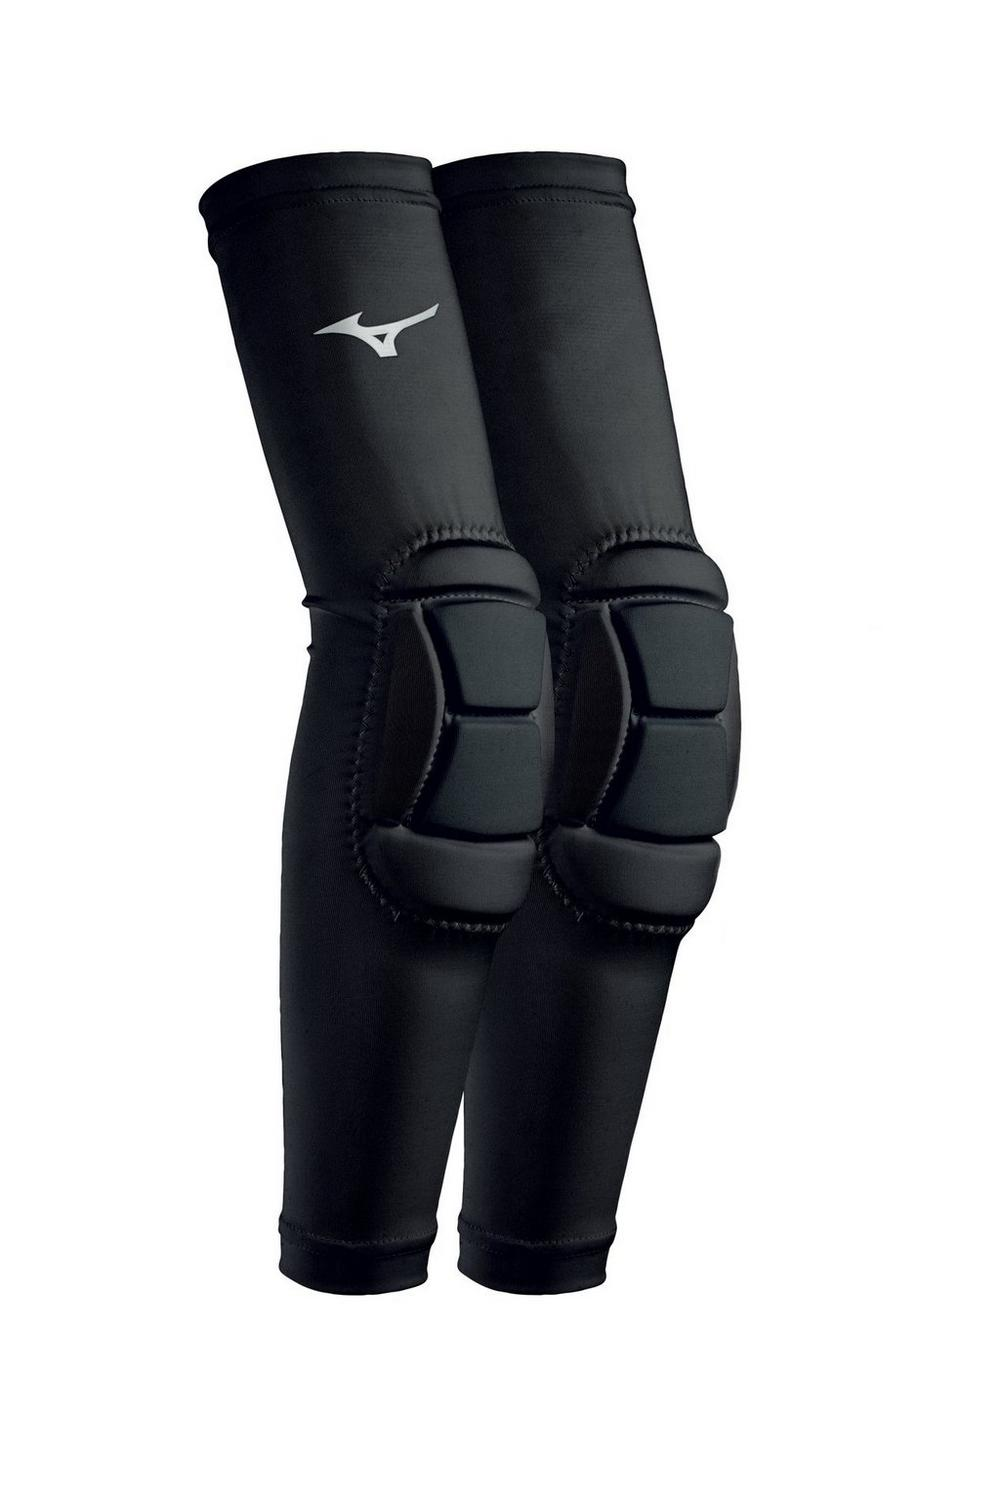 Elbow Sleeves & Elbow Pads